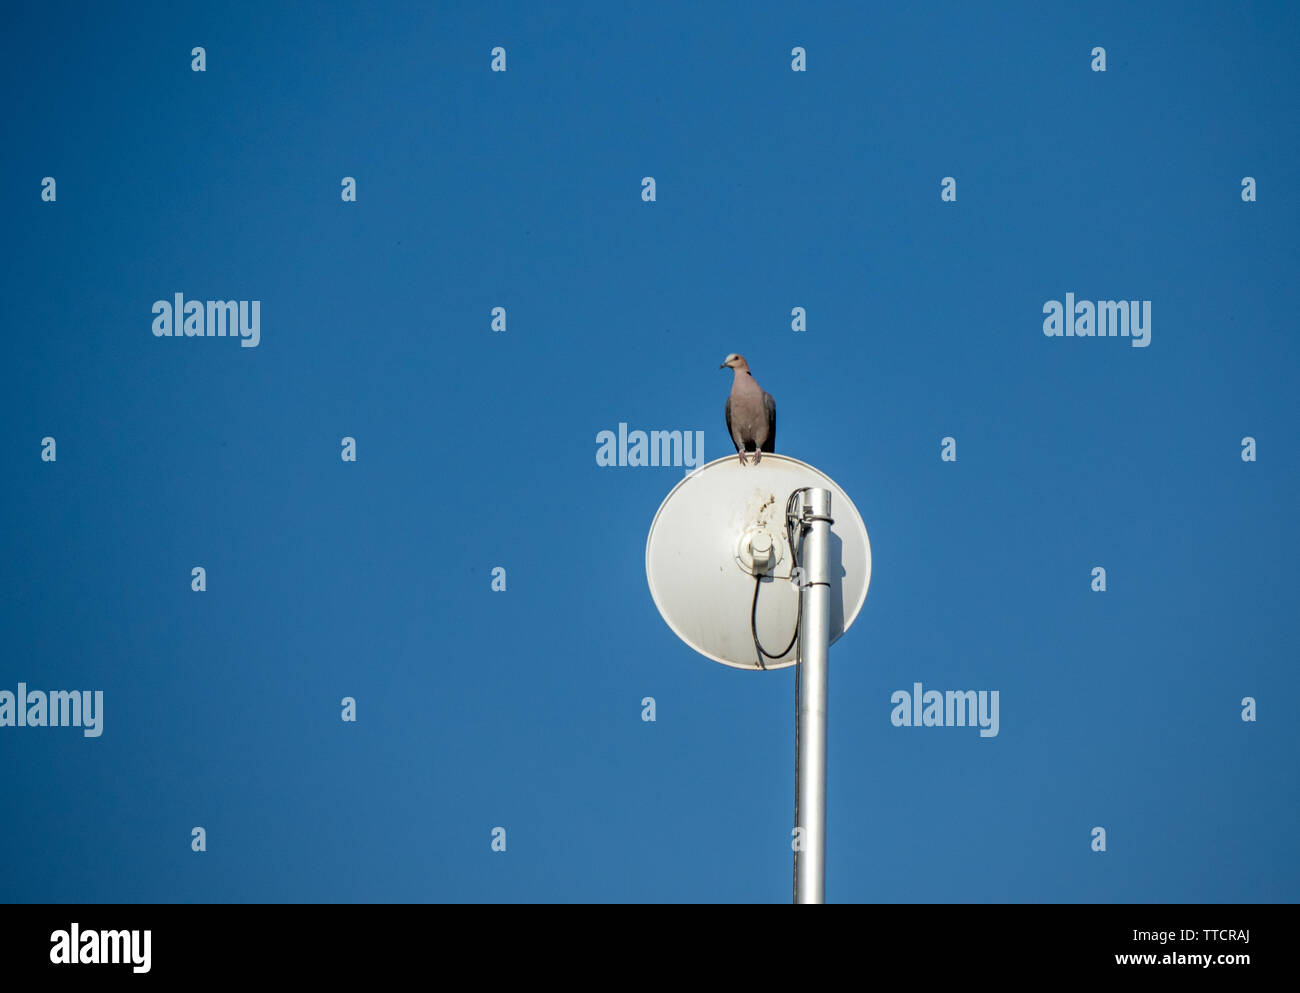 A dove perched on a satellite dish isolated against a clear blue sky image with copy space in landscape format - Stock Image